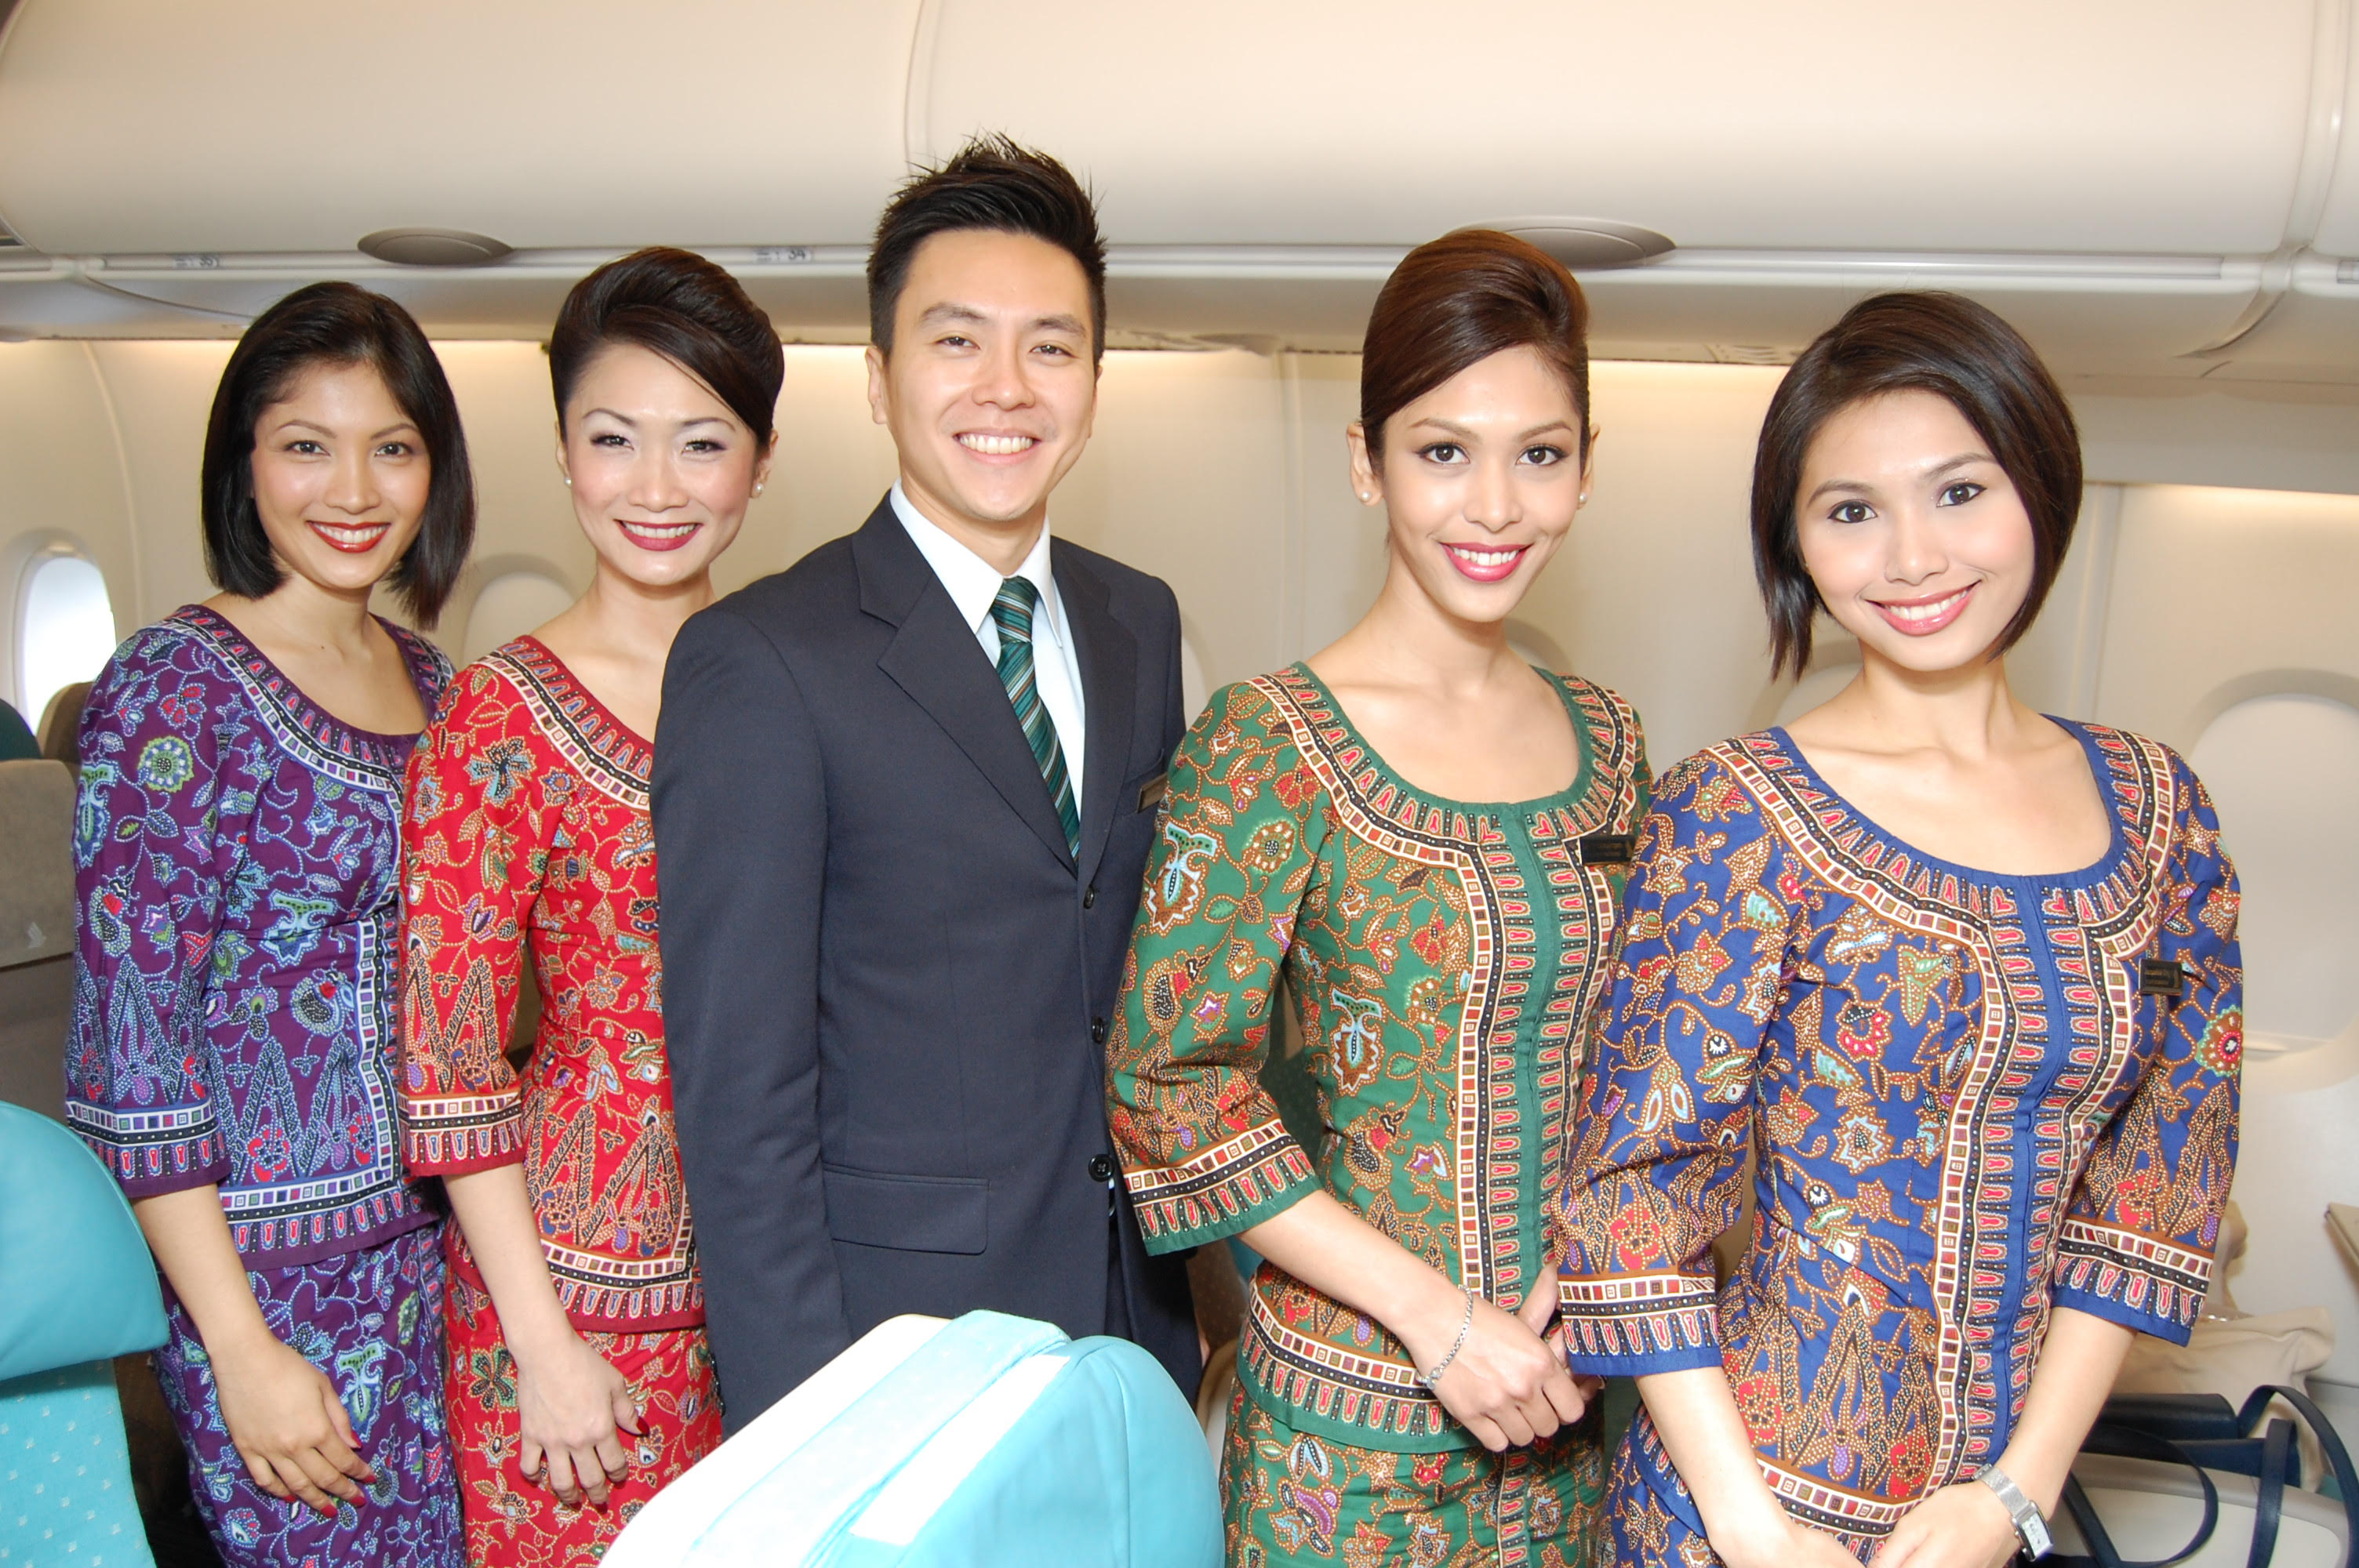 Fliegende Ikonen Singapore Airlines